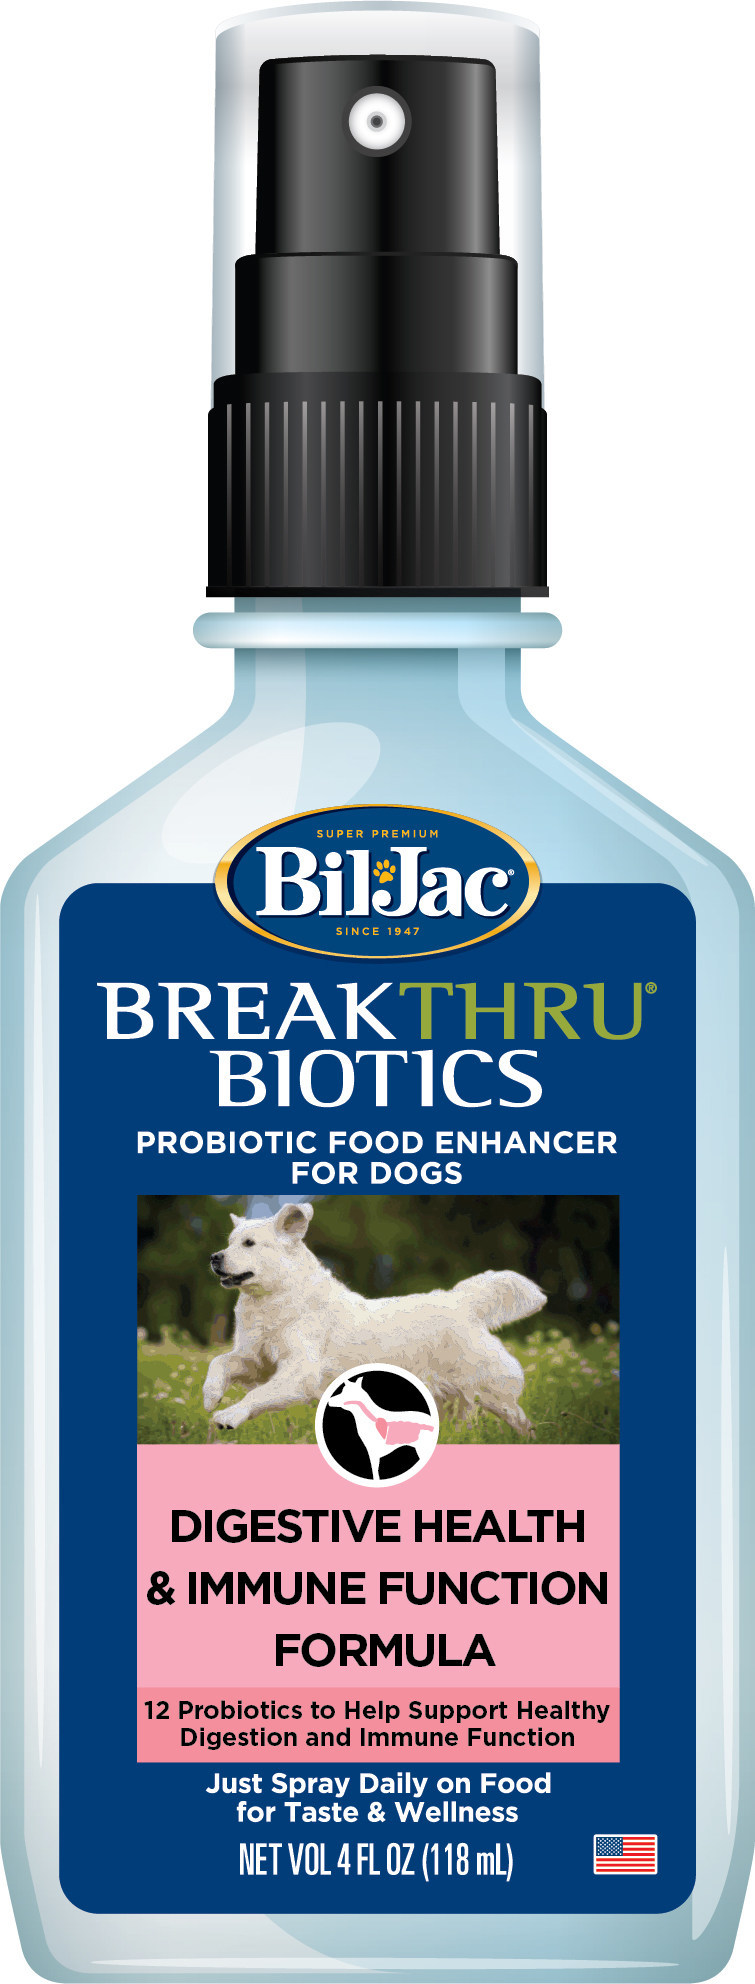 BreakThru®& Biotics Probiotic Spray by Bil-Jac offers dog parents an easy, natural, proactive way to provide their dogs with daily probiotics.  Probiotics support two key dog concerns, digestive health and immune function.  BreakThru®& Biotics is now available at PetSmart stores.